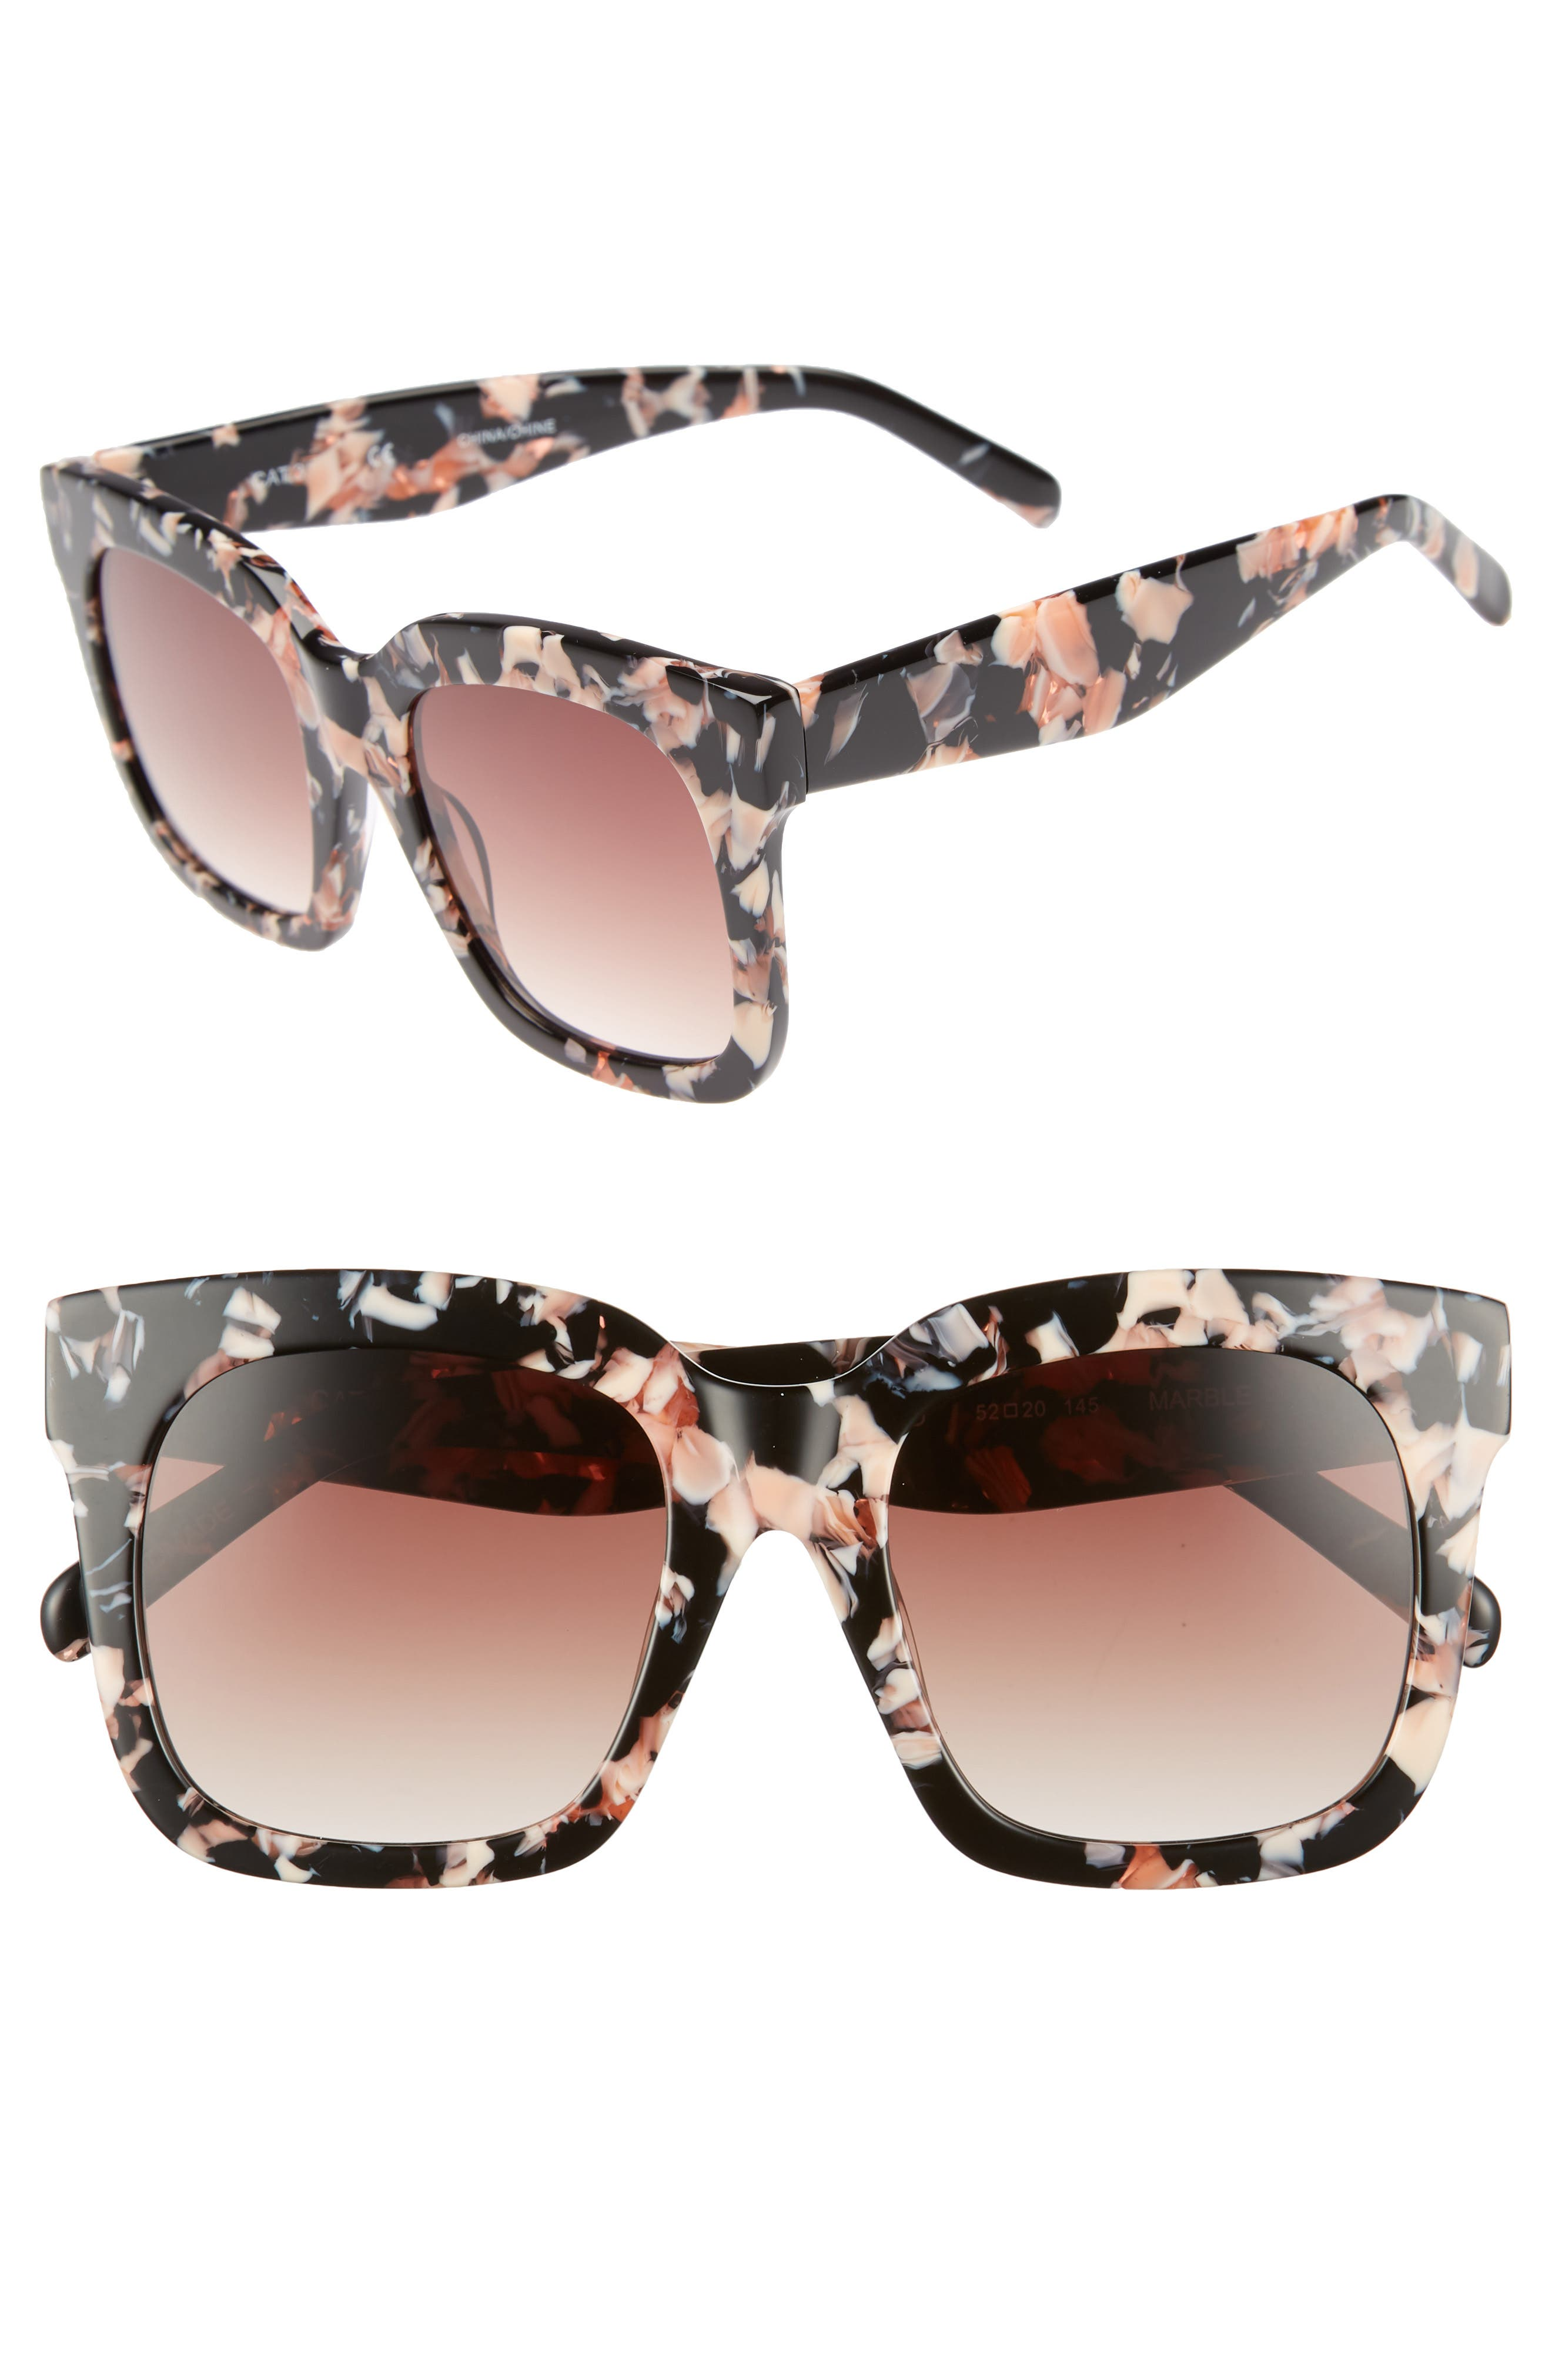 Coco 52mm Sunglasses,                             Main thumbnail 1, color,                             Black Pink Marble